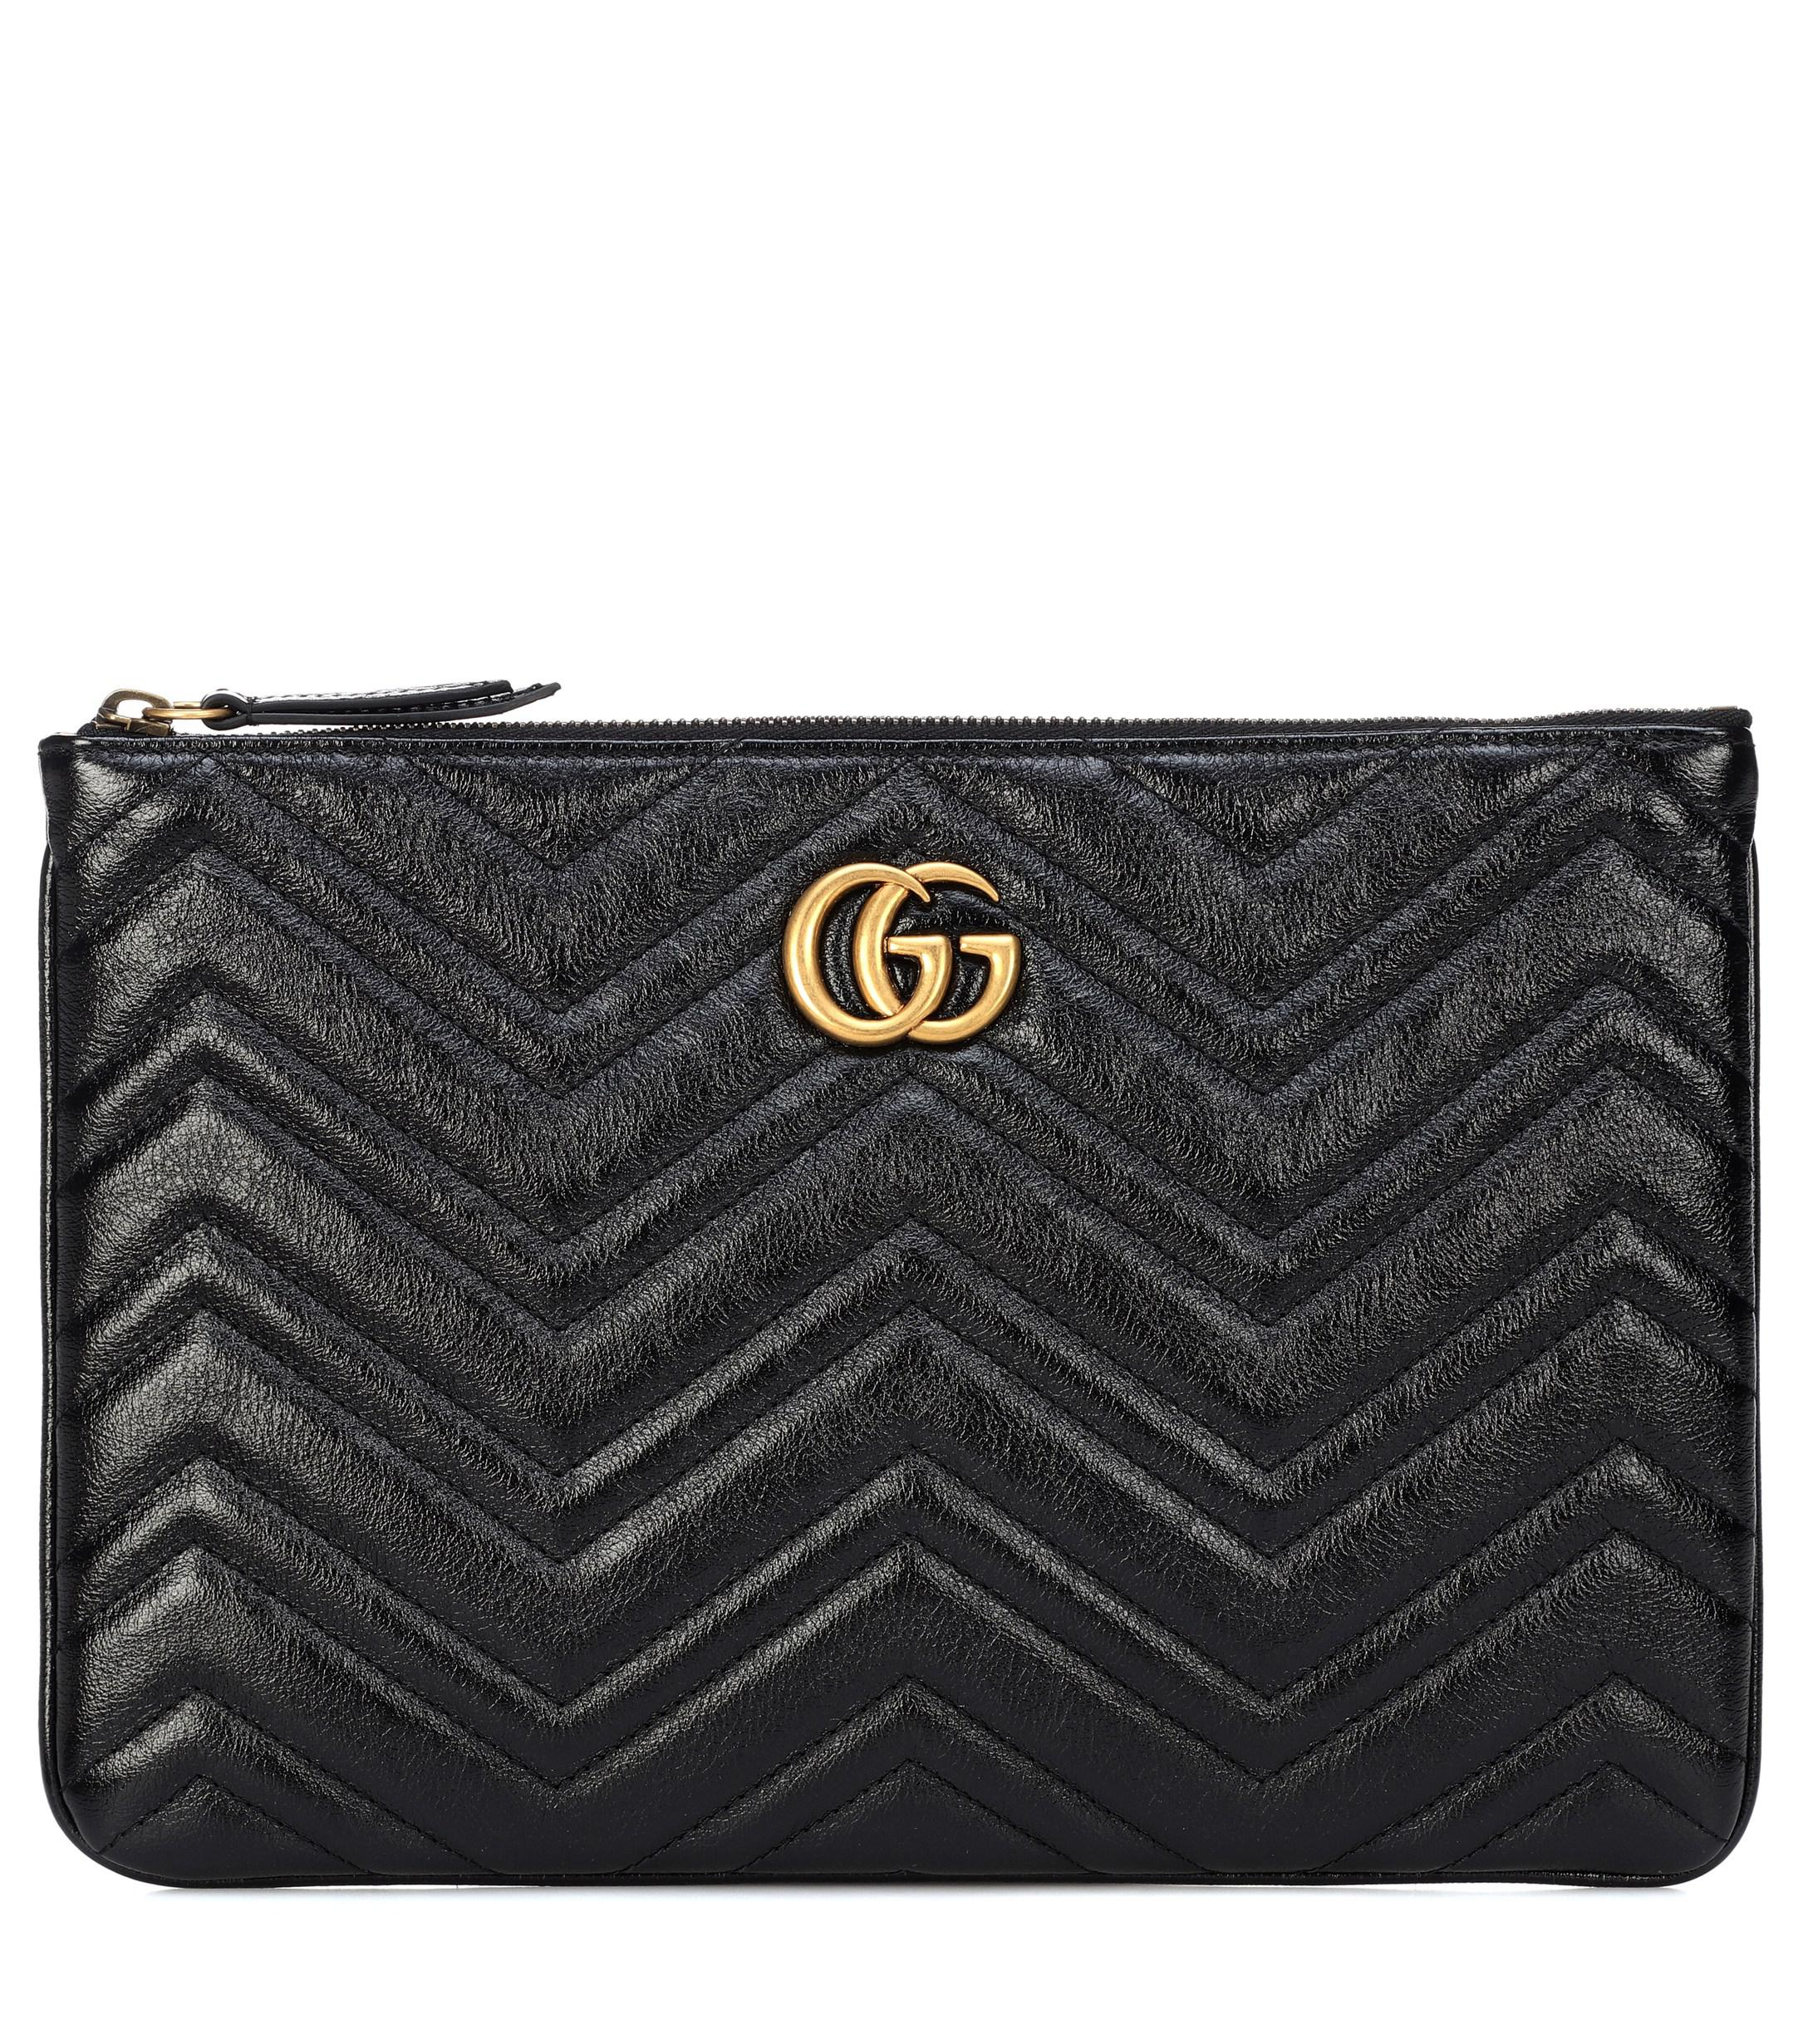 52bef15e7ffe Lyst - Gucci GG Marmont Quilted Leather Clutch in Black